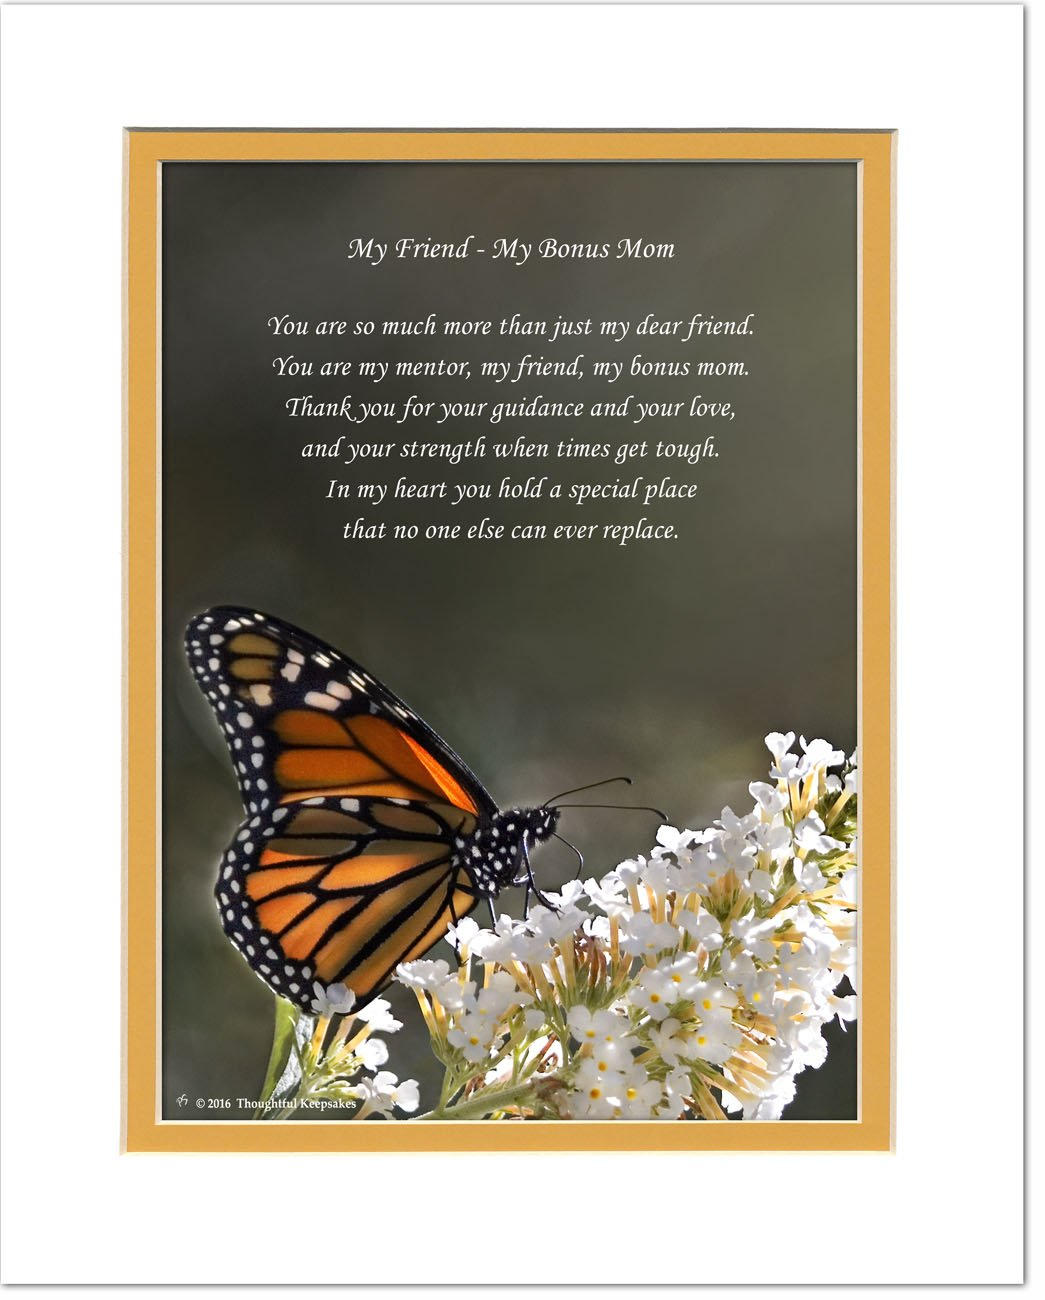 Second Mom, Stepmom or Friend Like-A-Mom Gift with ''You are My Mentor, My Friend, My Bonus Mom'' Poem, Butterfly Photo, 8x10 Double Matted. Stepmother, Special Birthday, Christmas, Mother's Day Gifts.